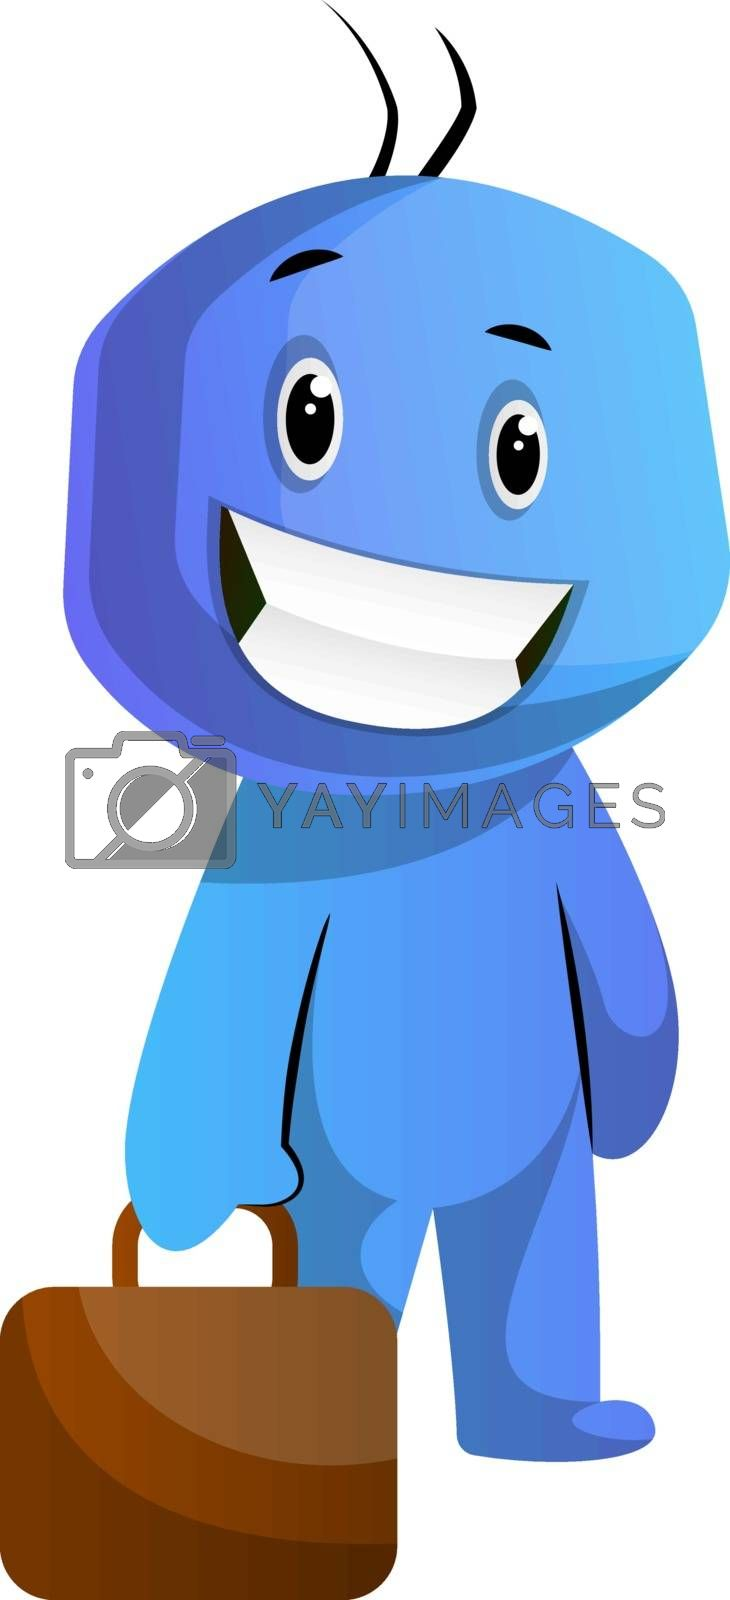 Royalty free image of Blue cartoon caracter holding a briefcase illustration vector on by Morphart